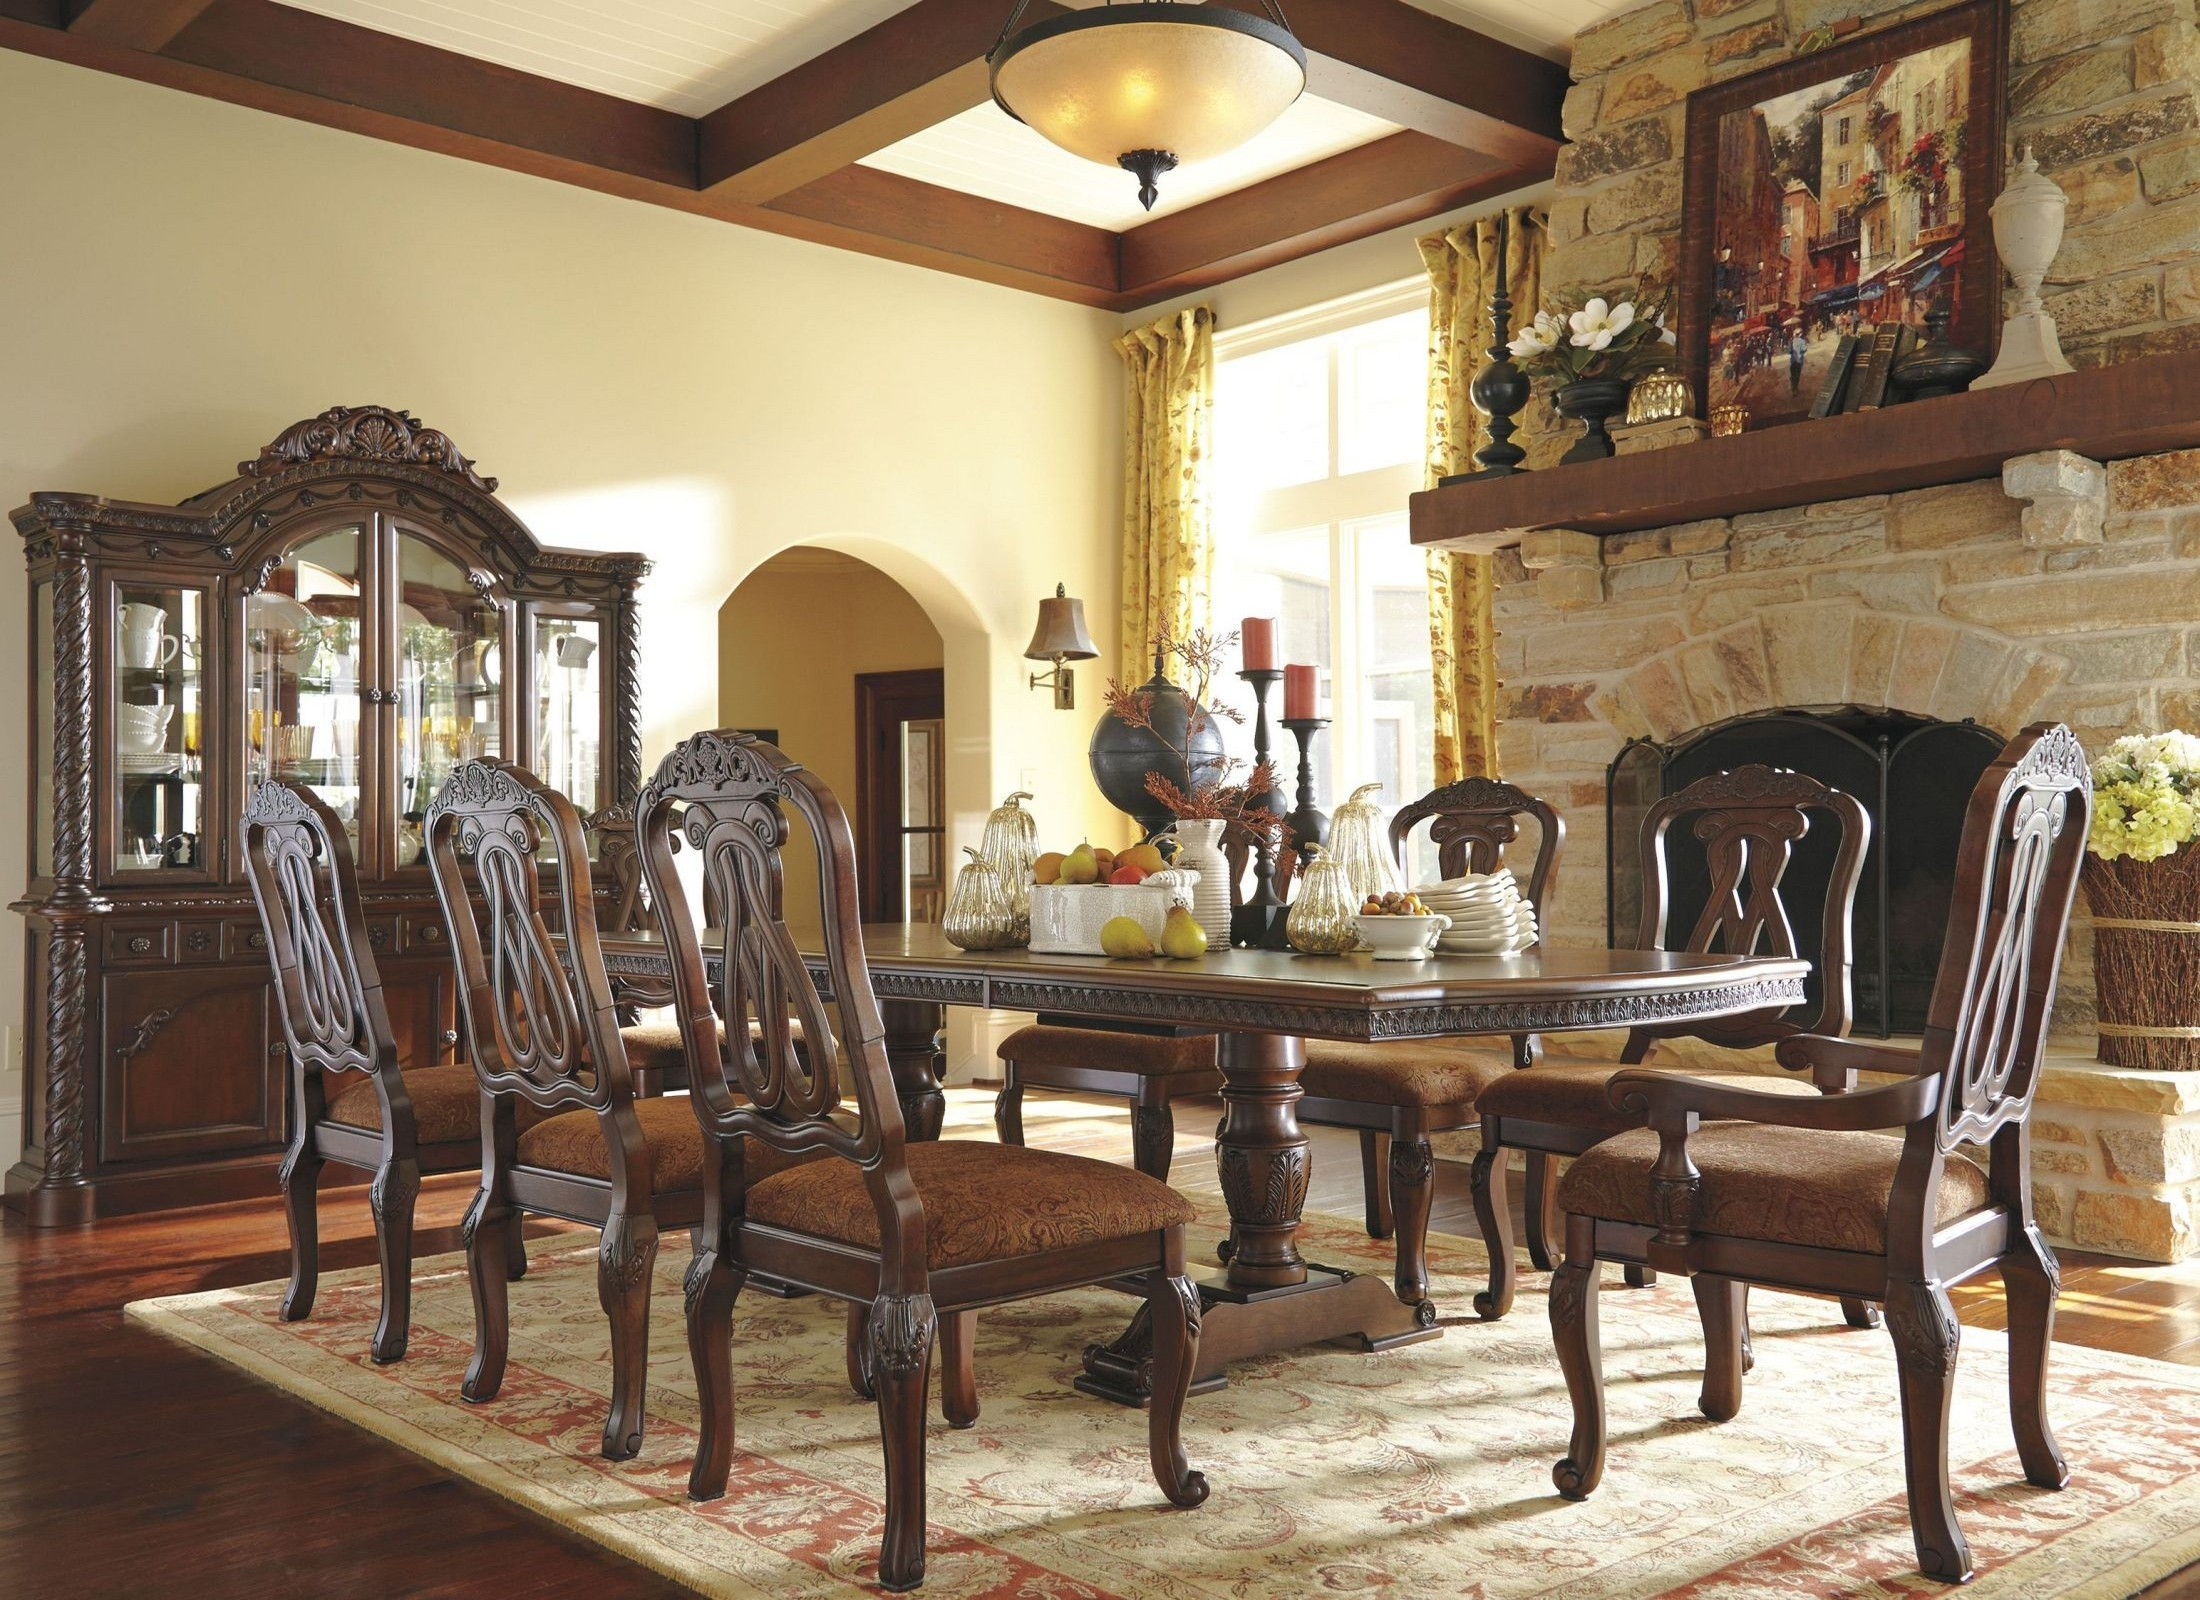 ashley furniture dining set with amazing | Ashley North Shore Dining Room Set - Factory Direct ...